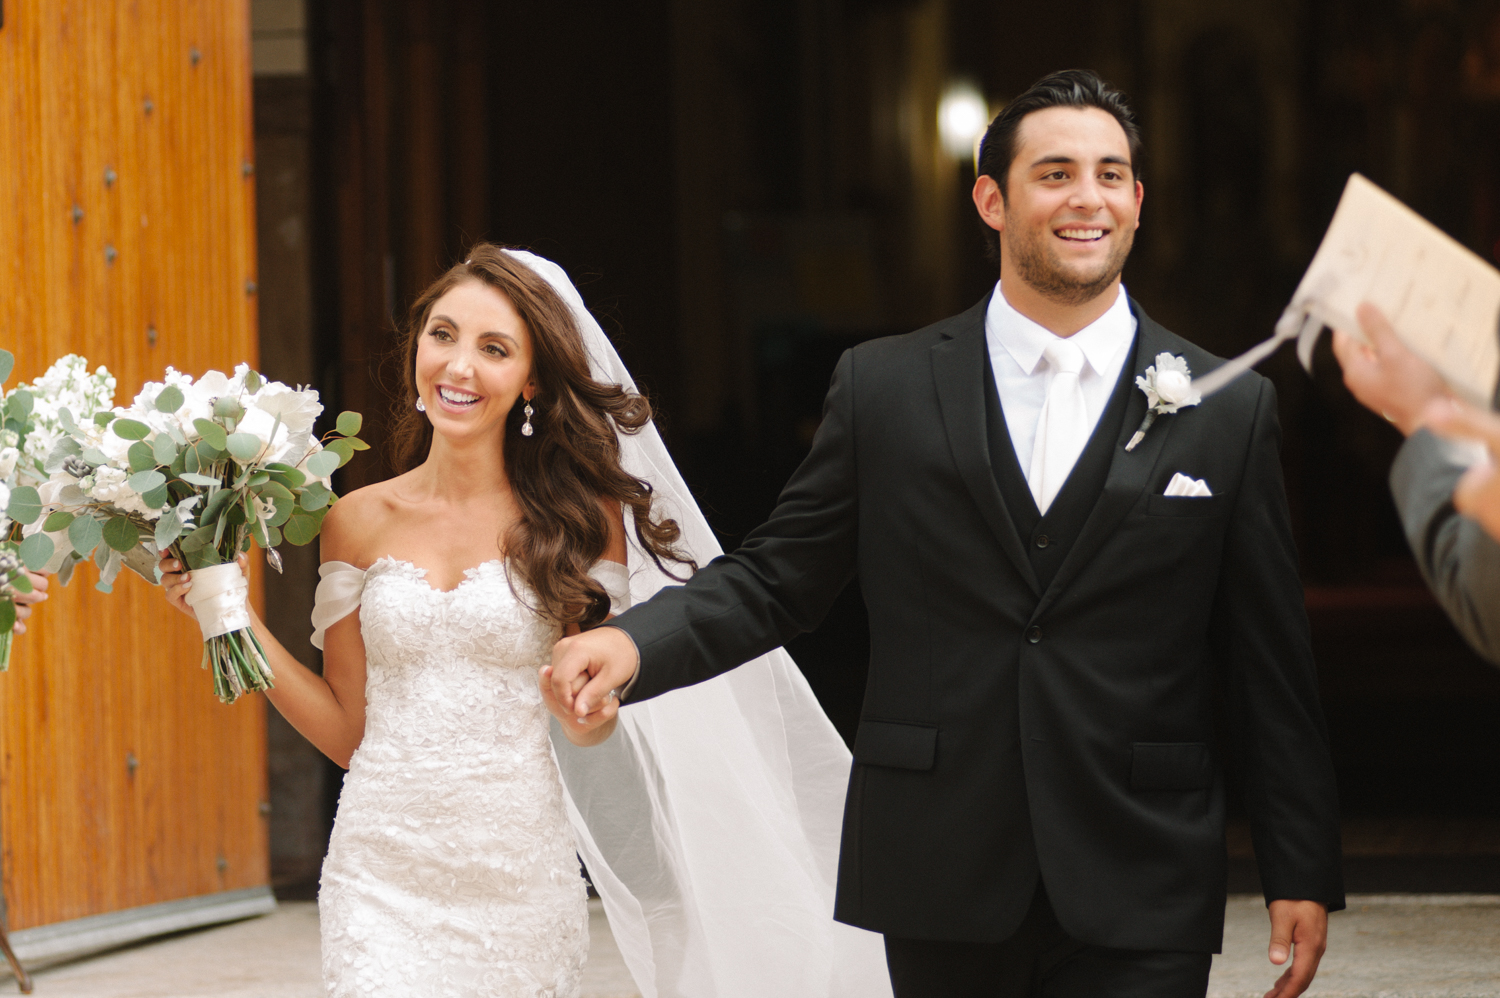 Bride and groom exit the church, Midwest wedding photographer